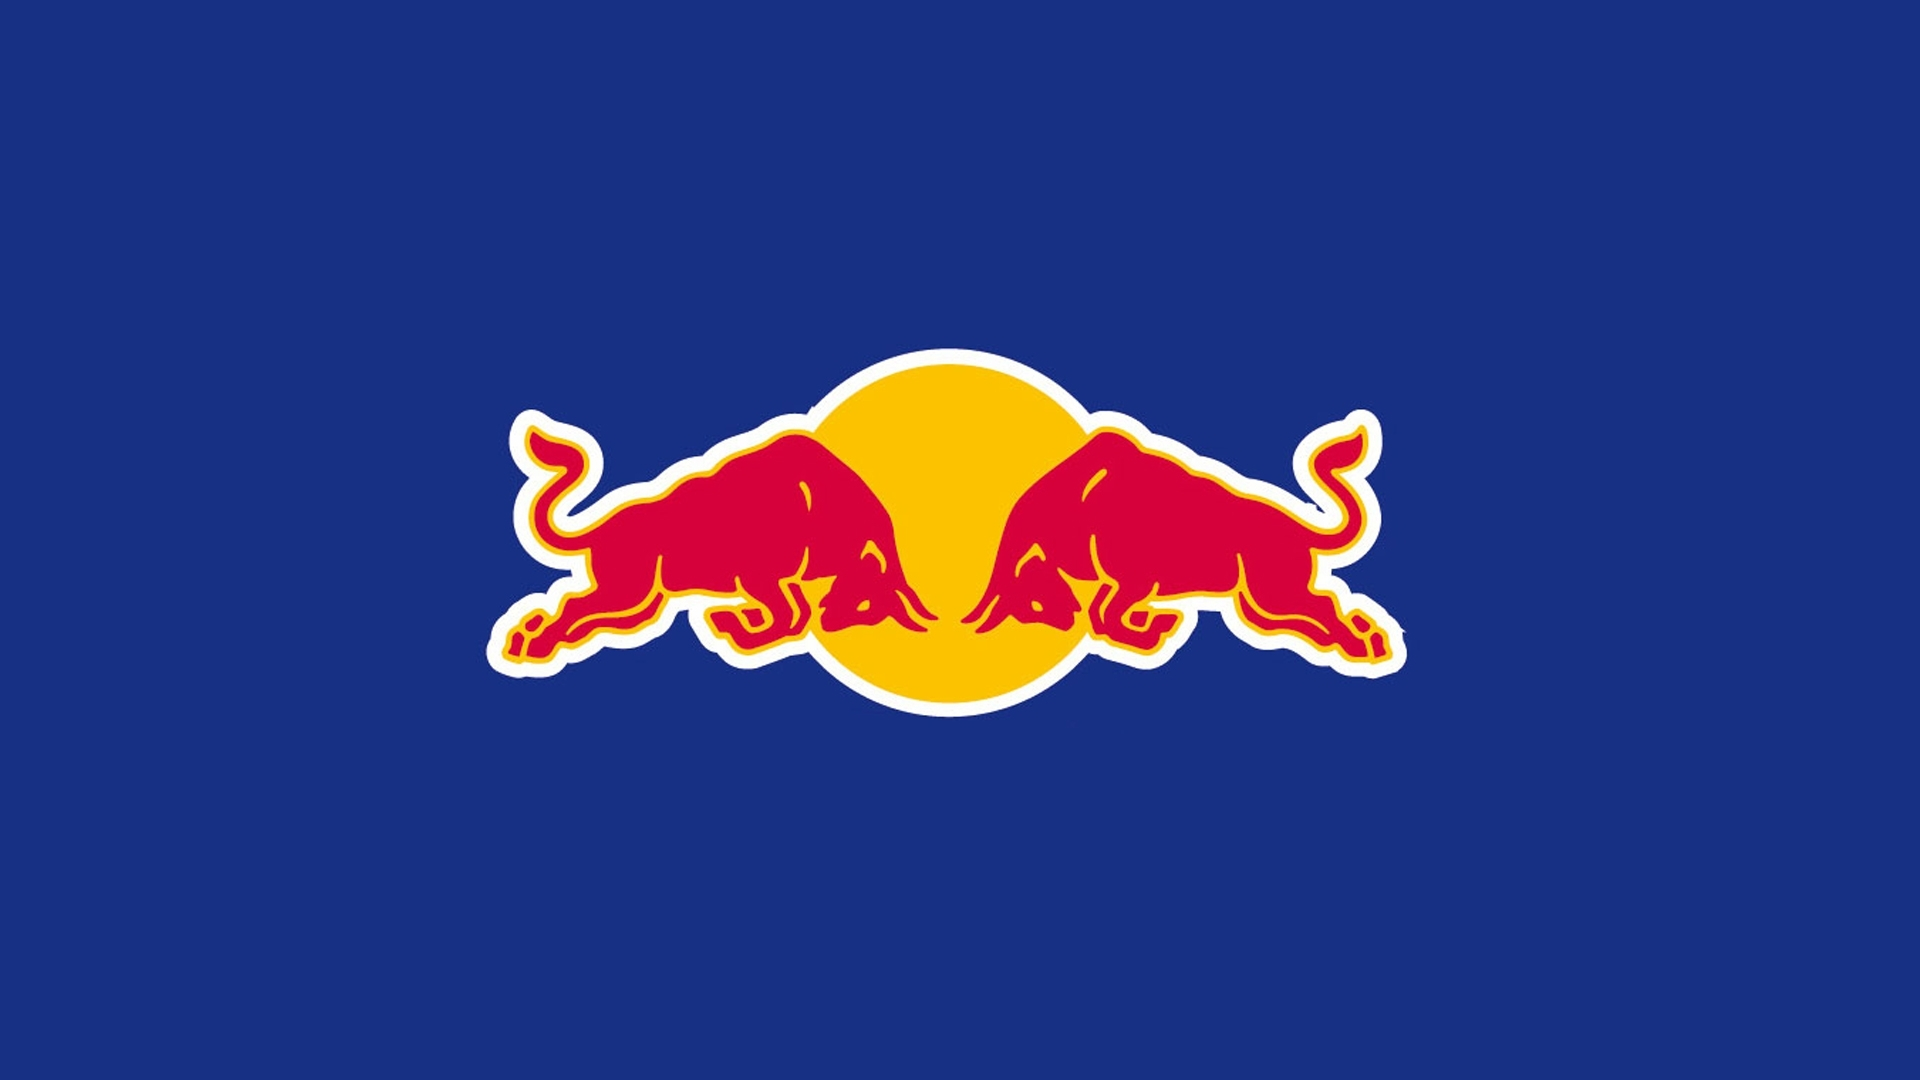 wallpaper.wiki-red-bull-logo-desktop-wallpaper-pic-wpd005155